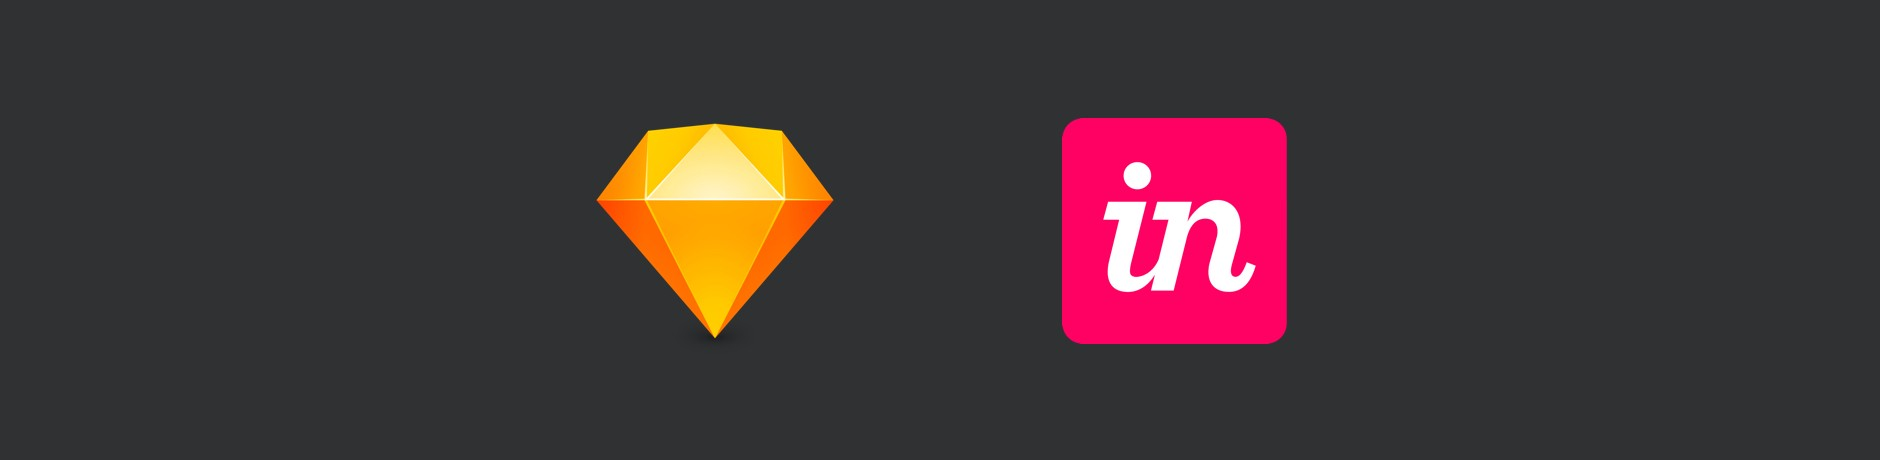 Logos of Sketch and InVision